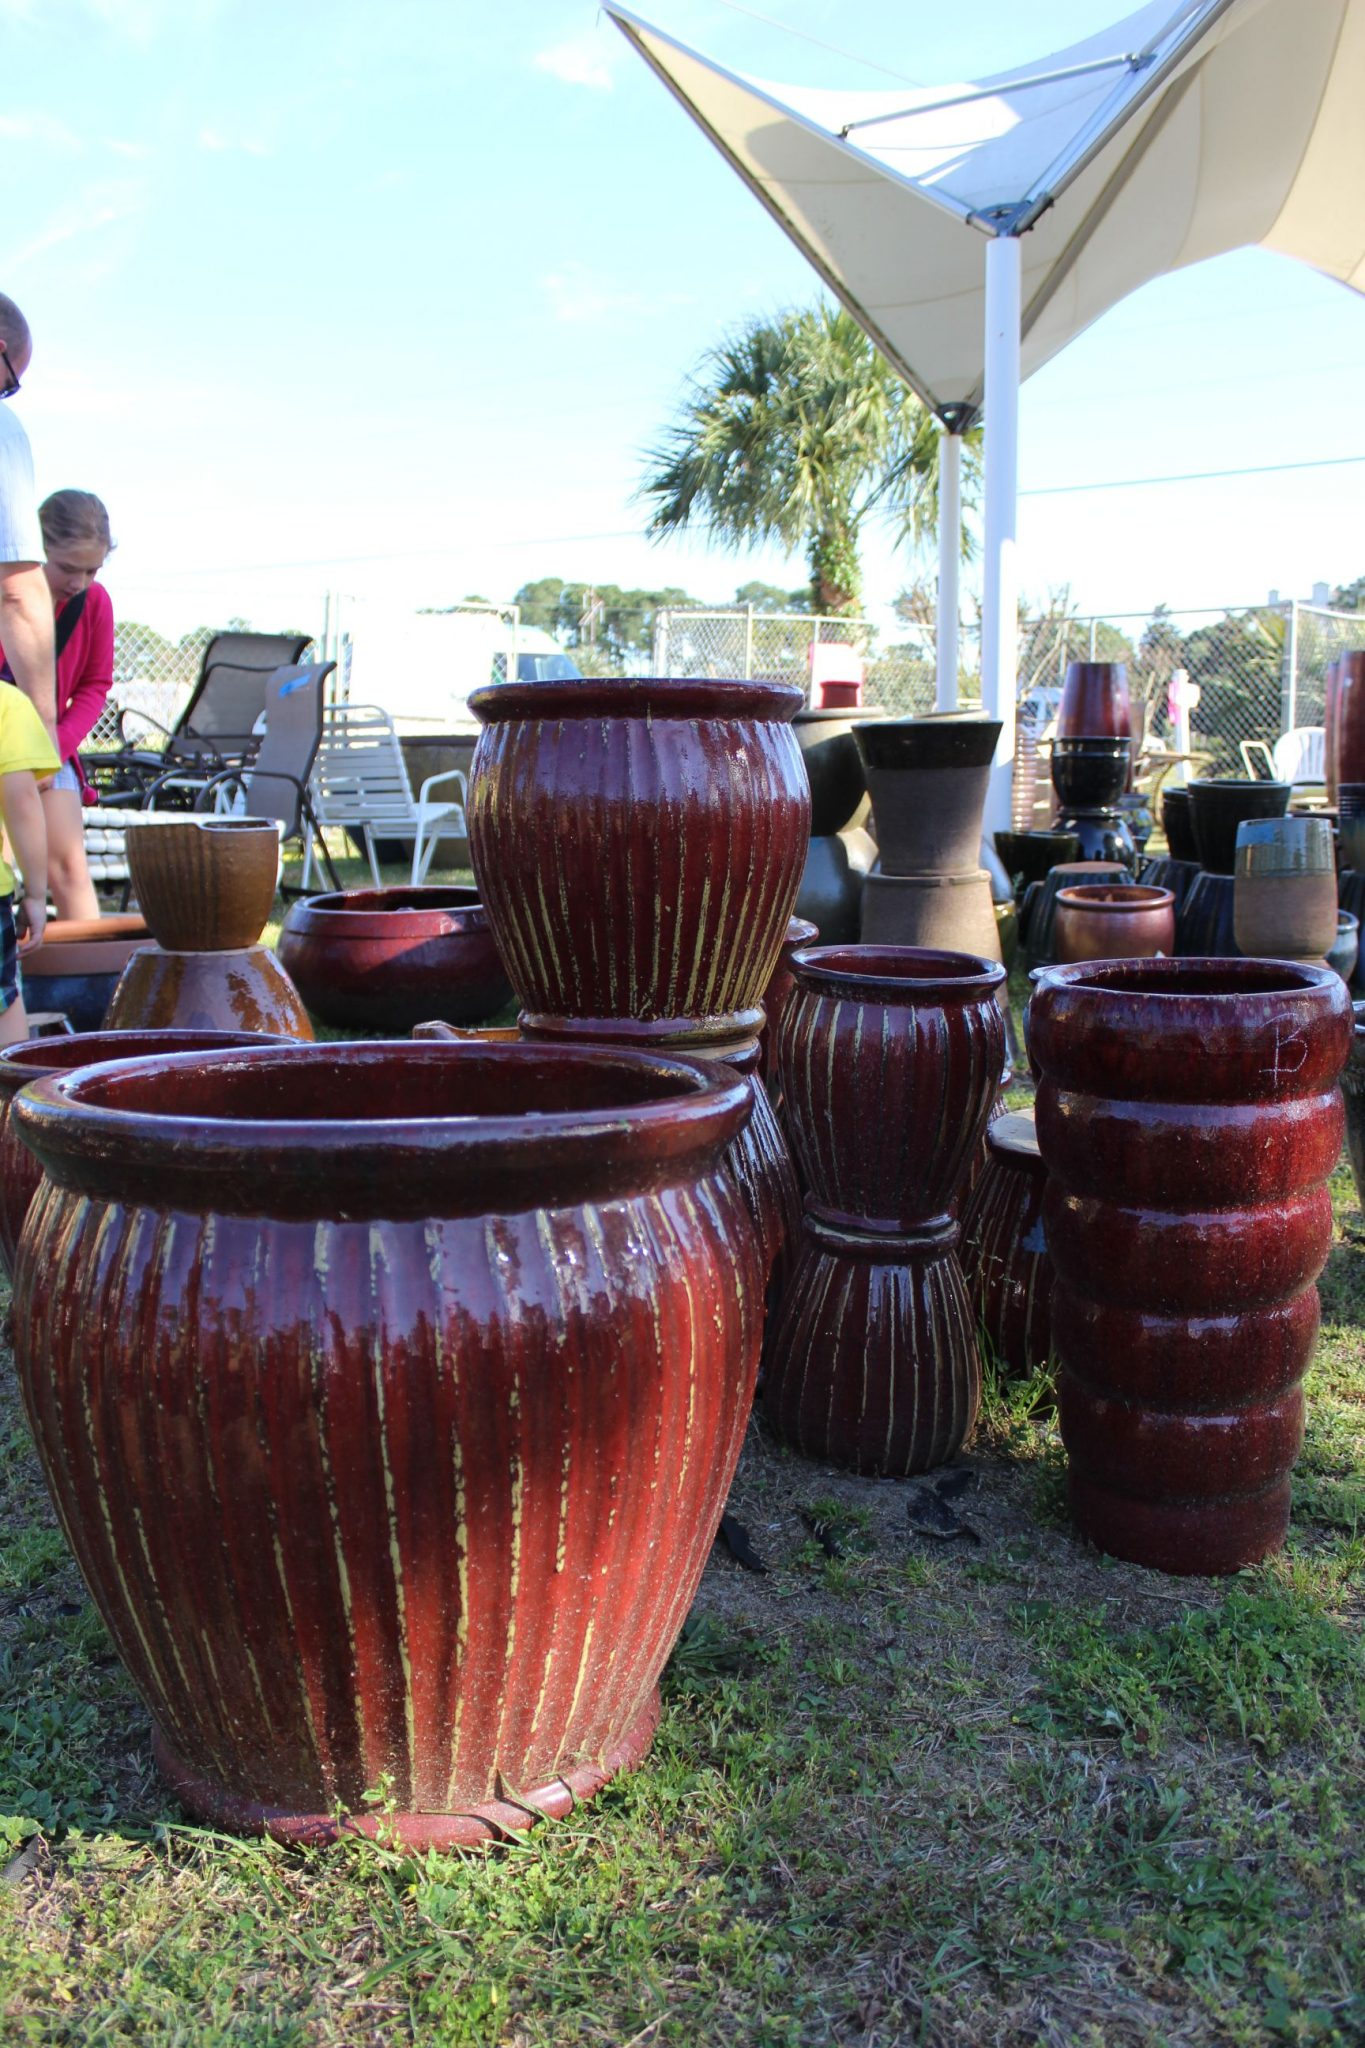 Pottery And Fountains U2013 Come Explore Our U201cpot Lotu201d Featuring A Wide  Selection Of Pots And Planters In An Array Of Sizes And Colors To Match Any  Décor.